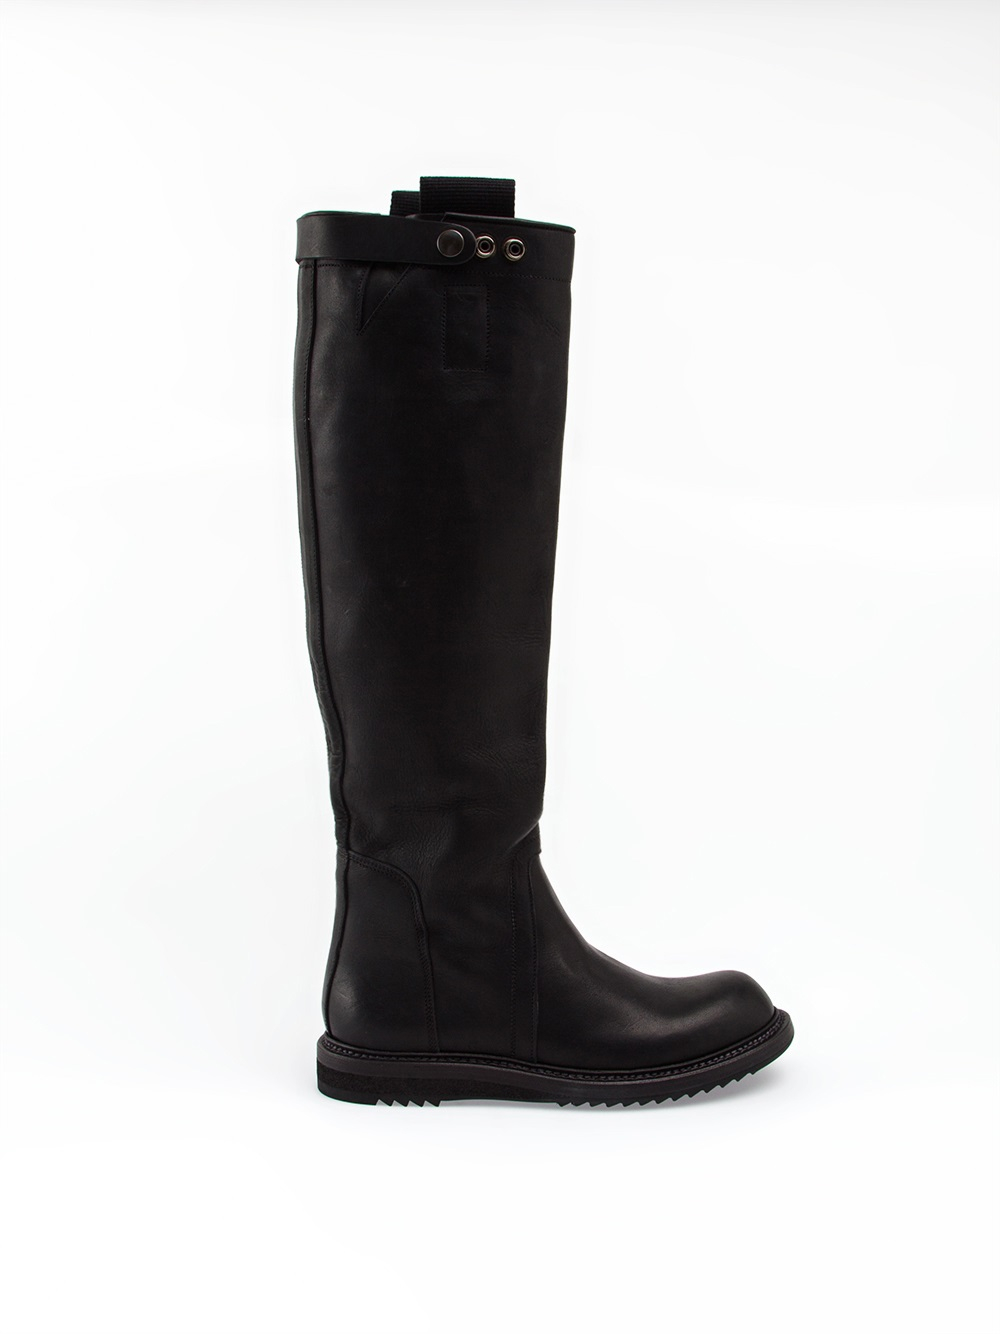 Rick owens Mid-Calf Riding Boots in Black | Lyst